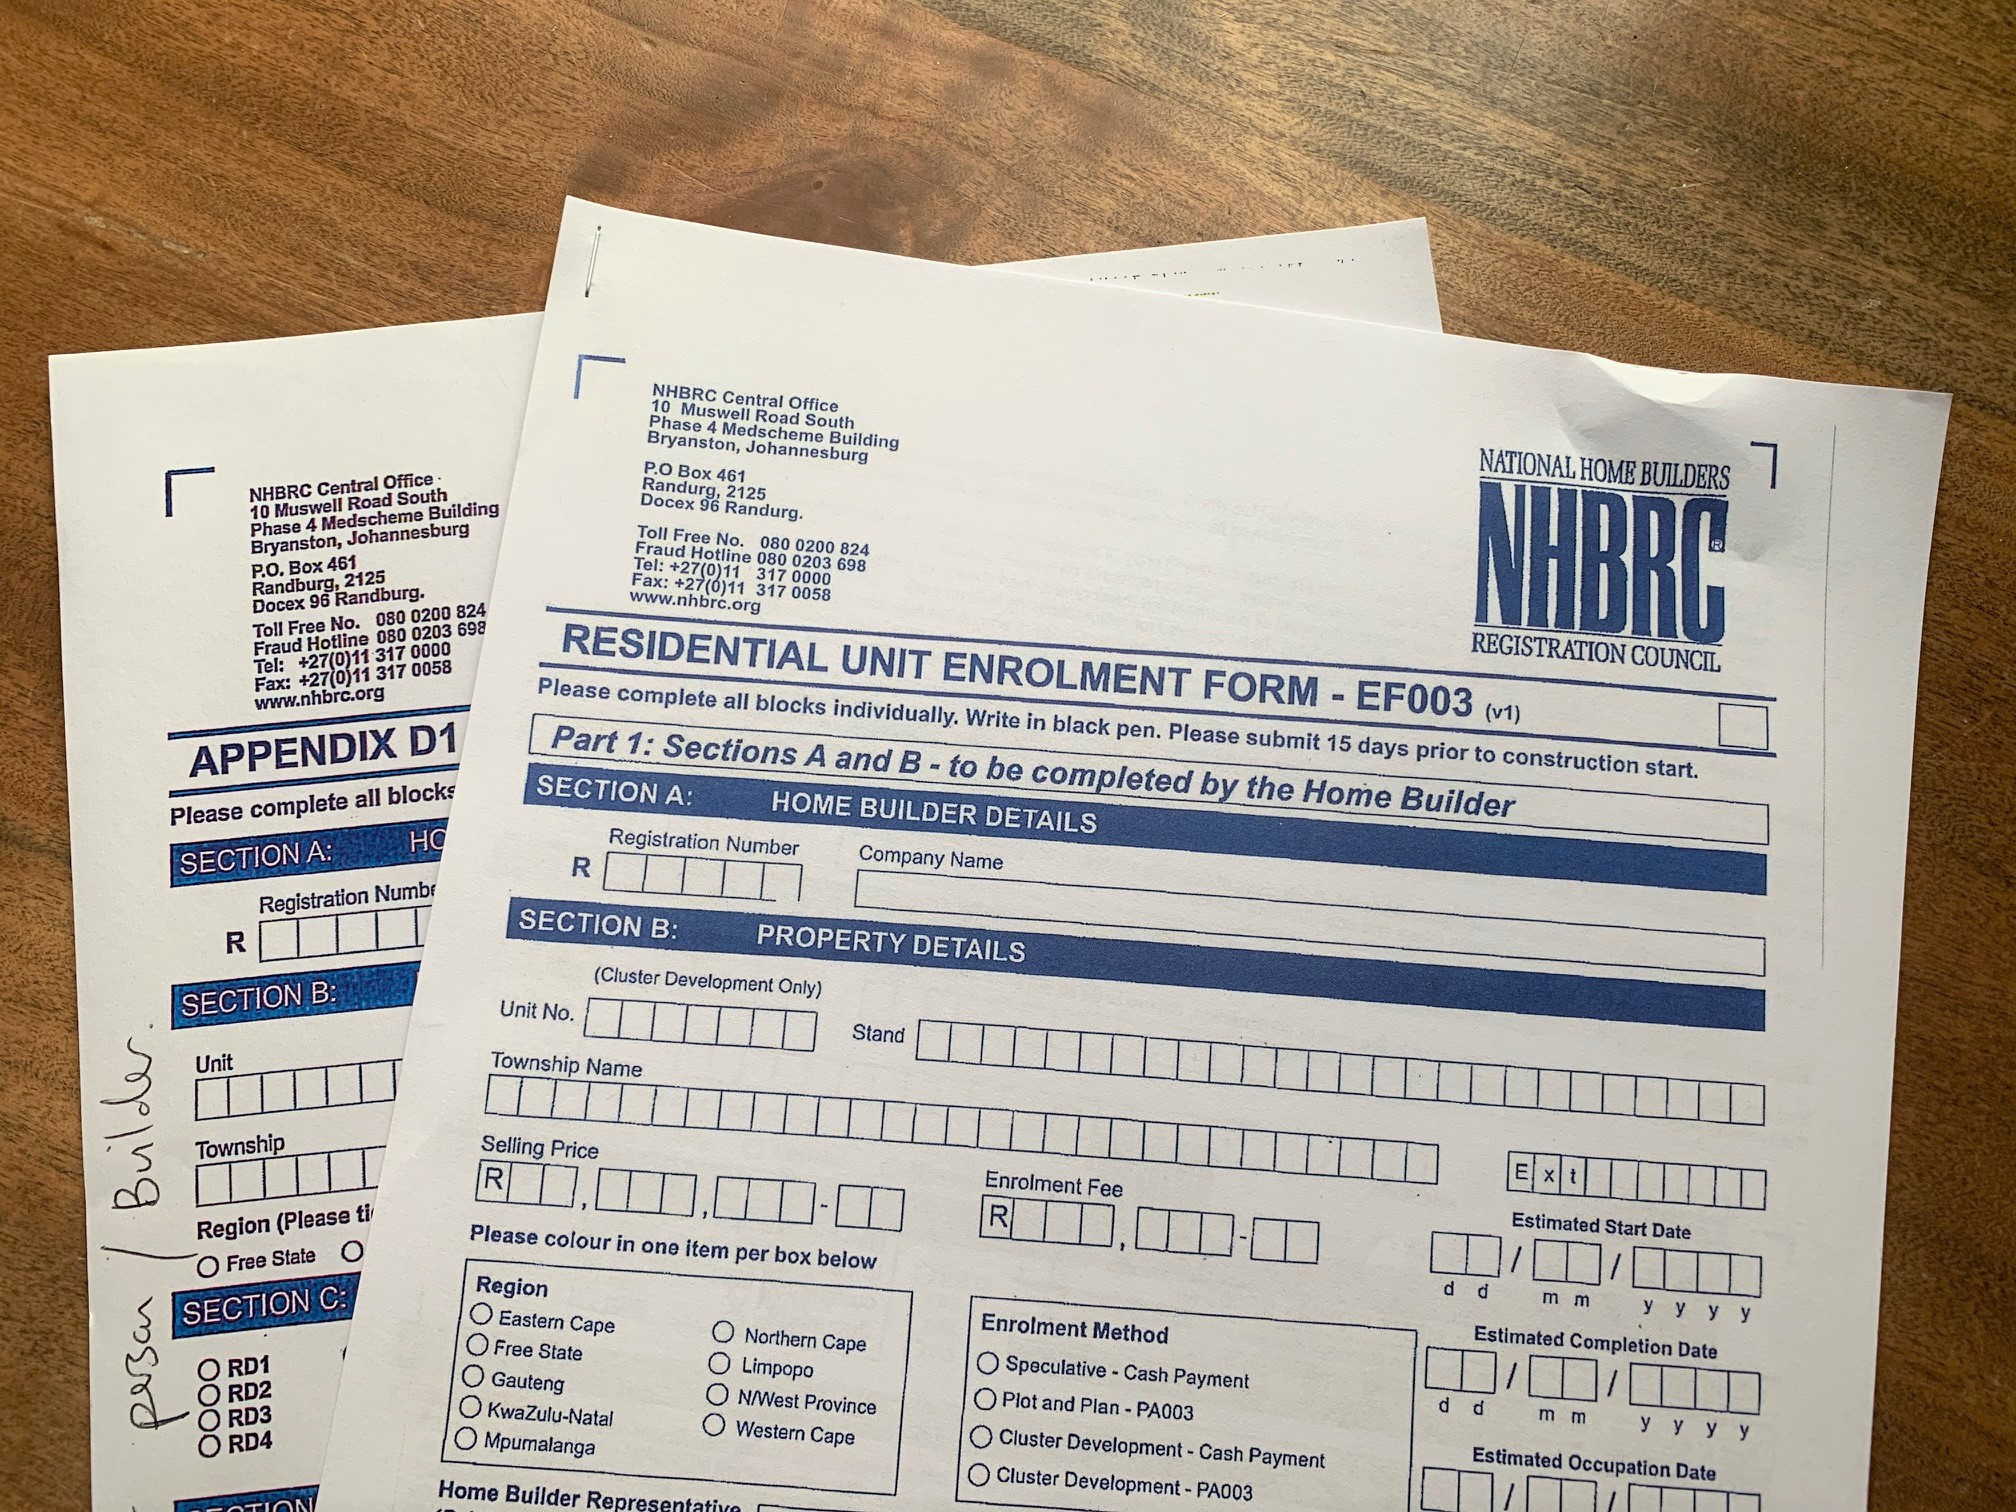 NHBRC enrollment forms